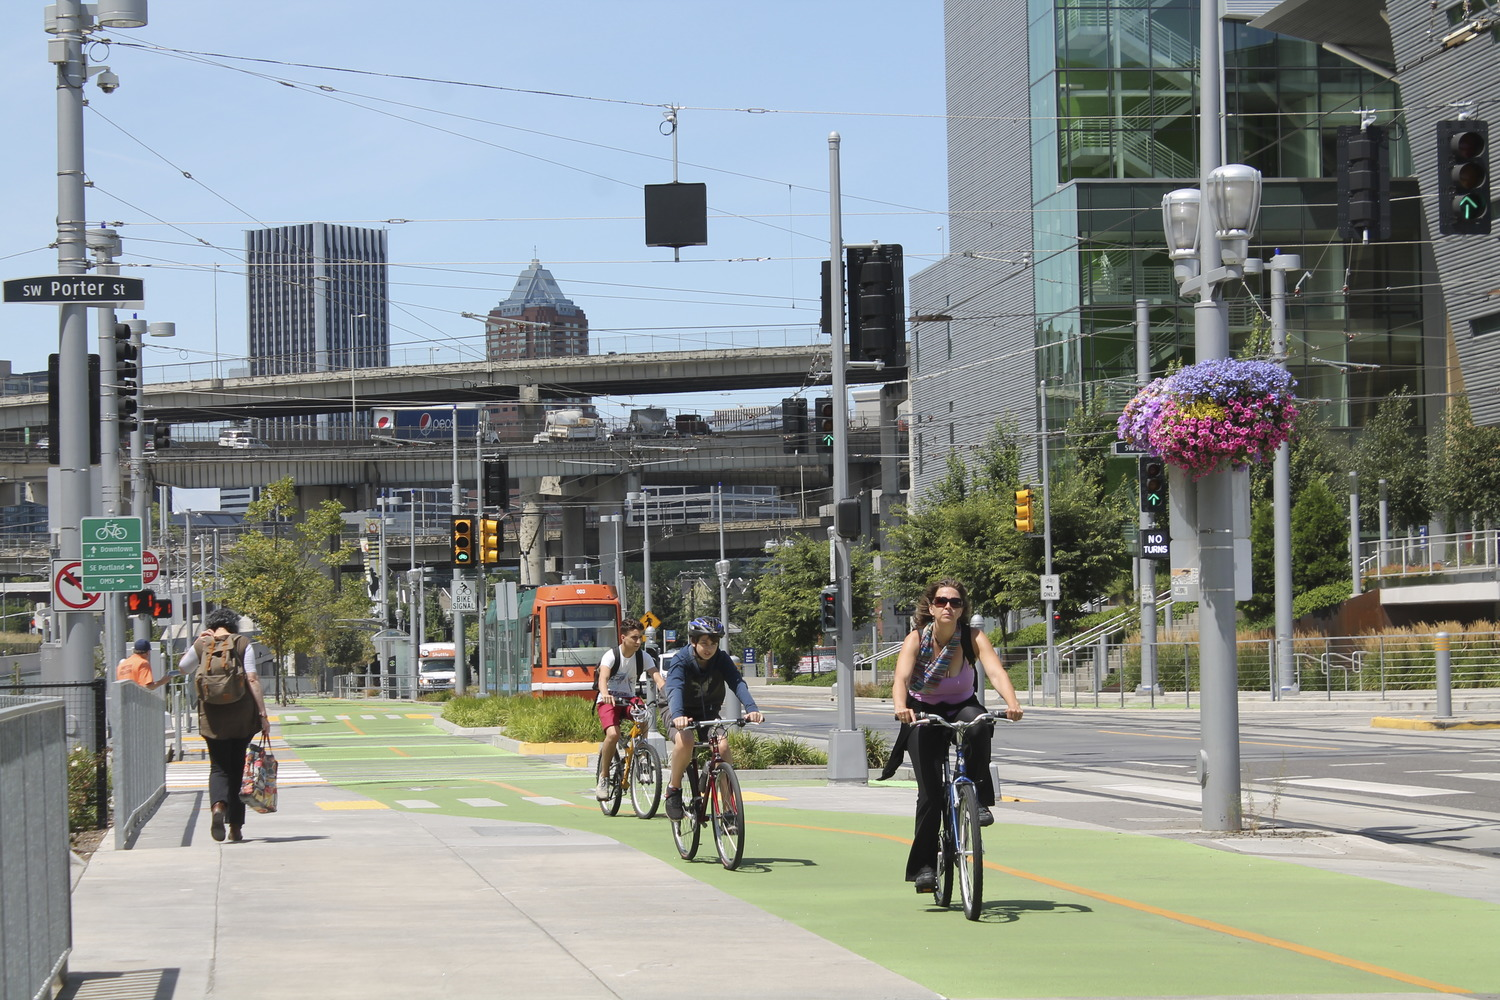 Why we need to reframe the rules of transportation design